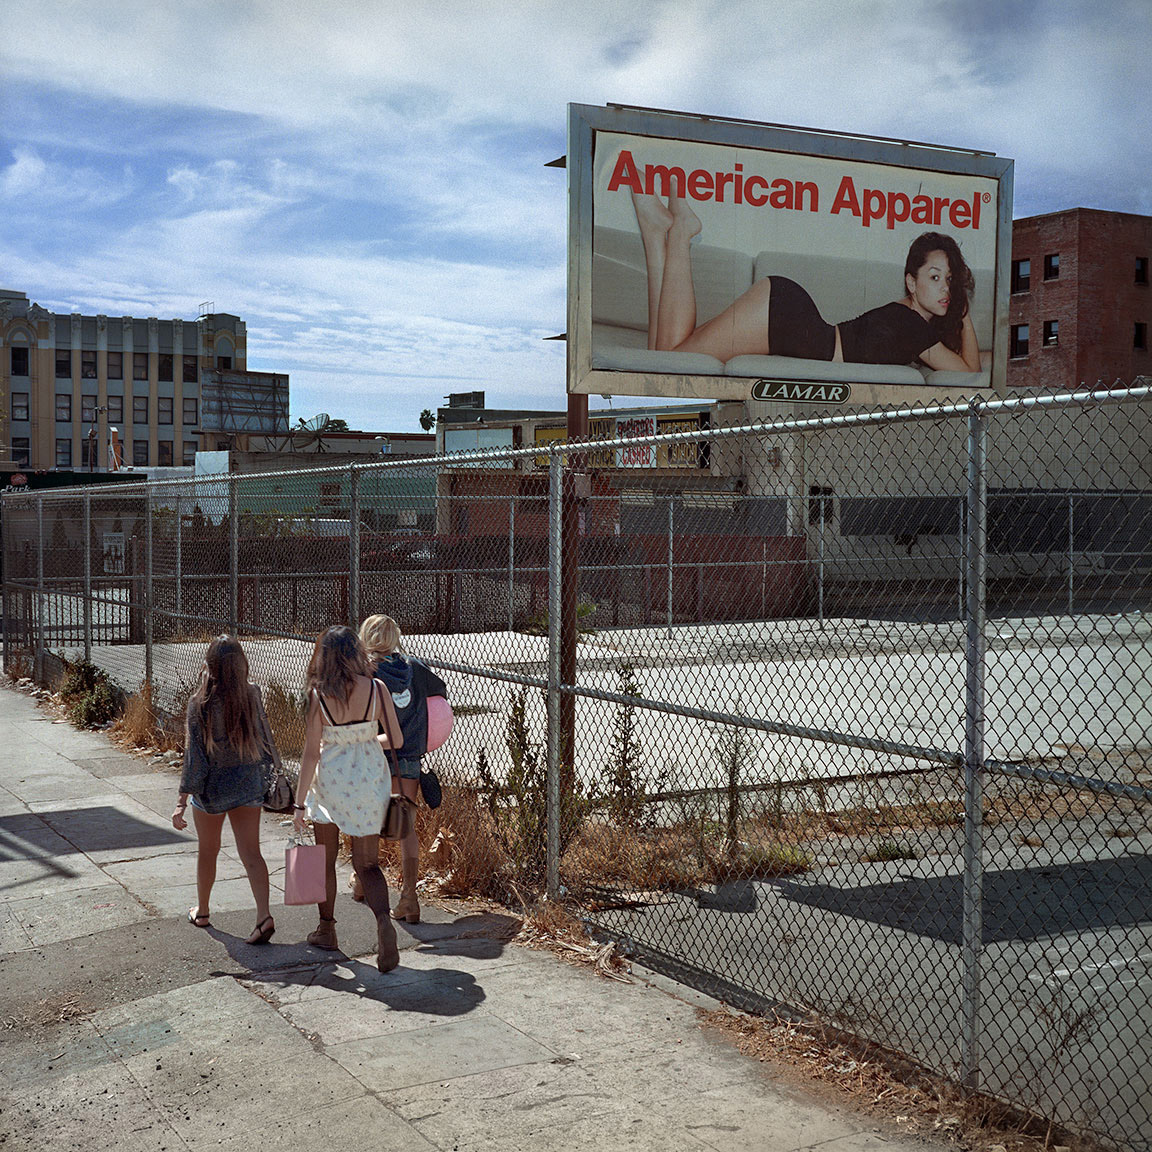 43-TheAmericanApparel-ThomasAlleman-Website-092214